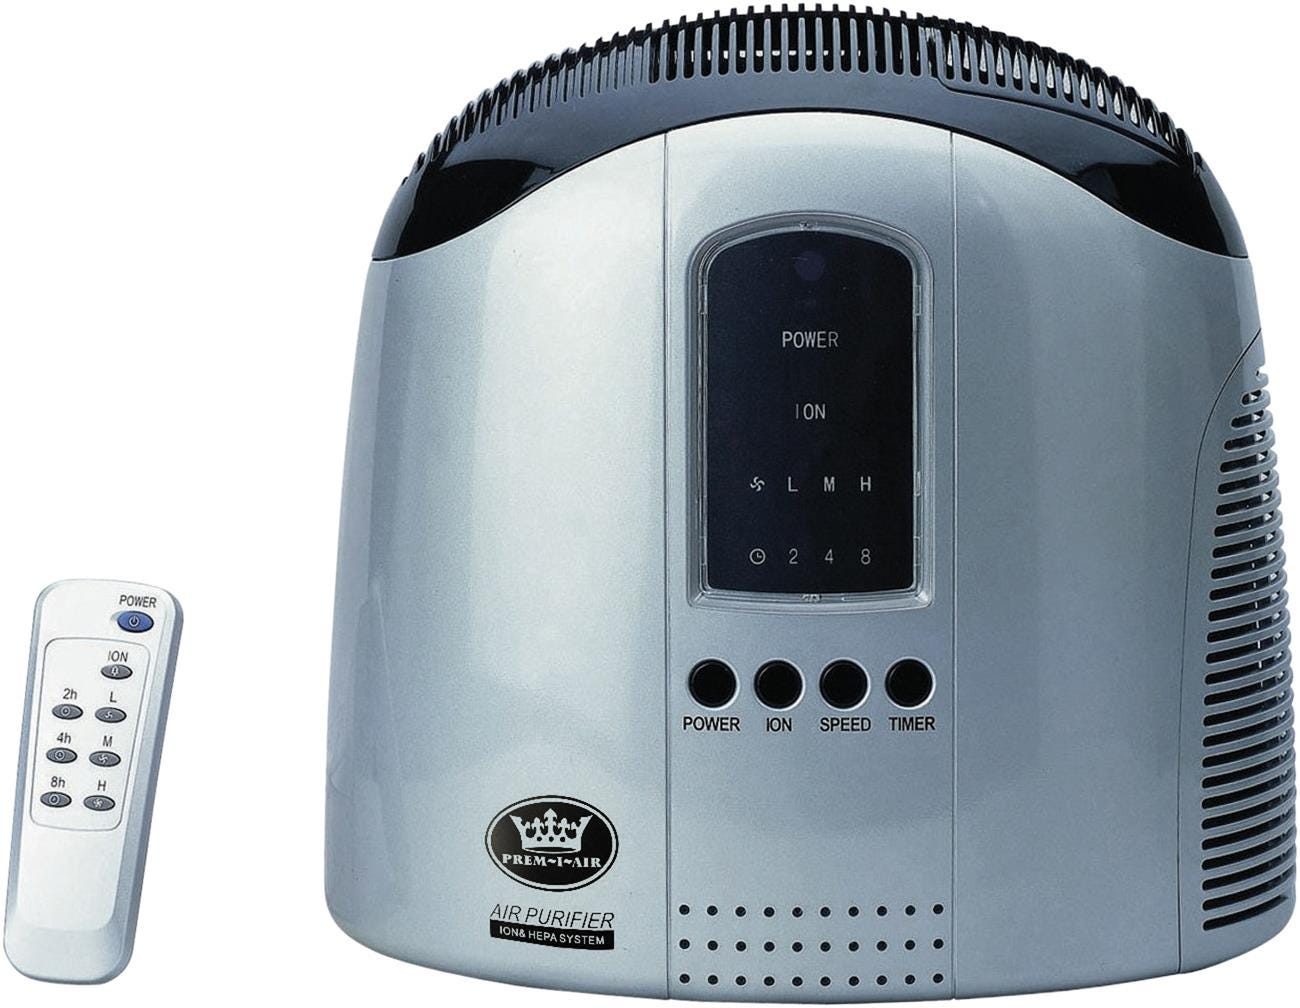 Prem-i-air HEPA Air Purifier with Ioniser and Remote Control